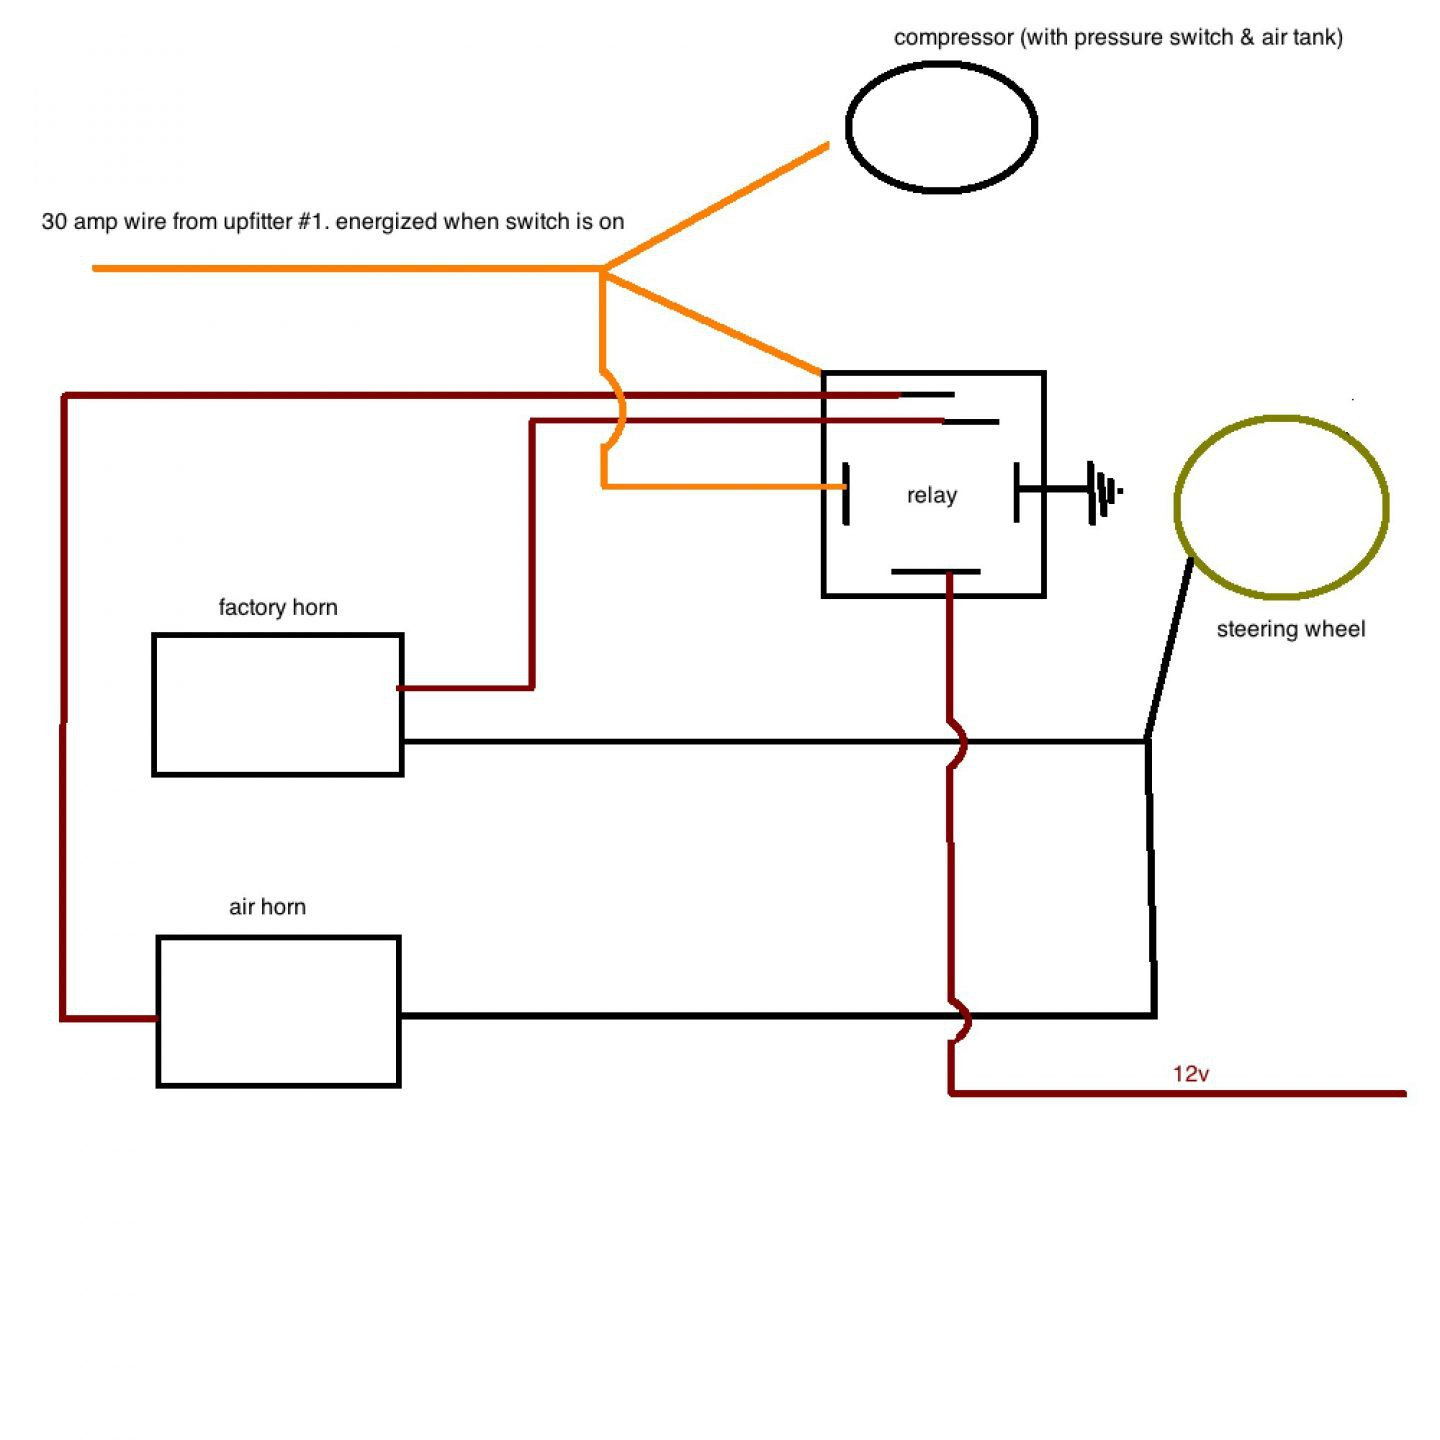 garage door sensor wiring diagram collection | wiring ... auto coil wiring diagram